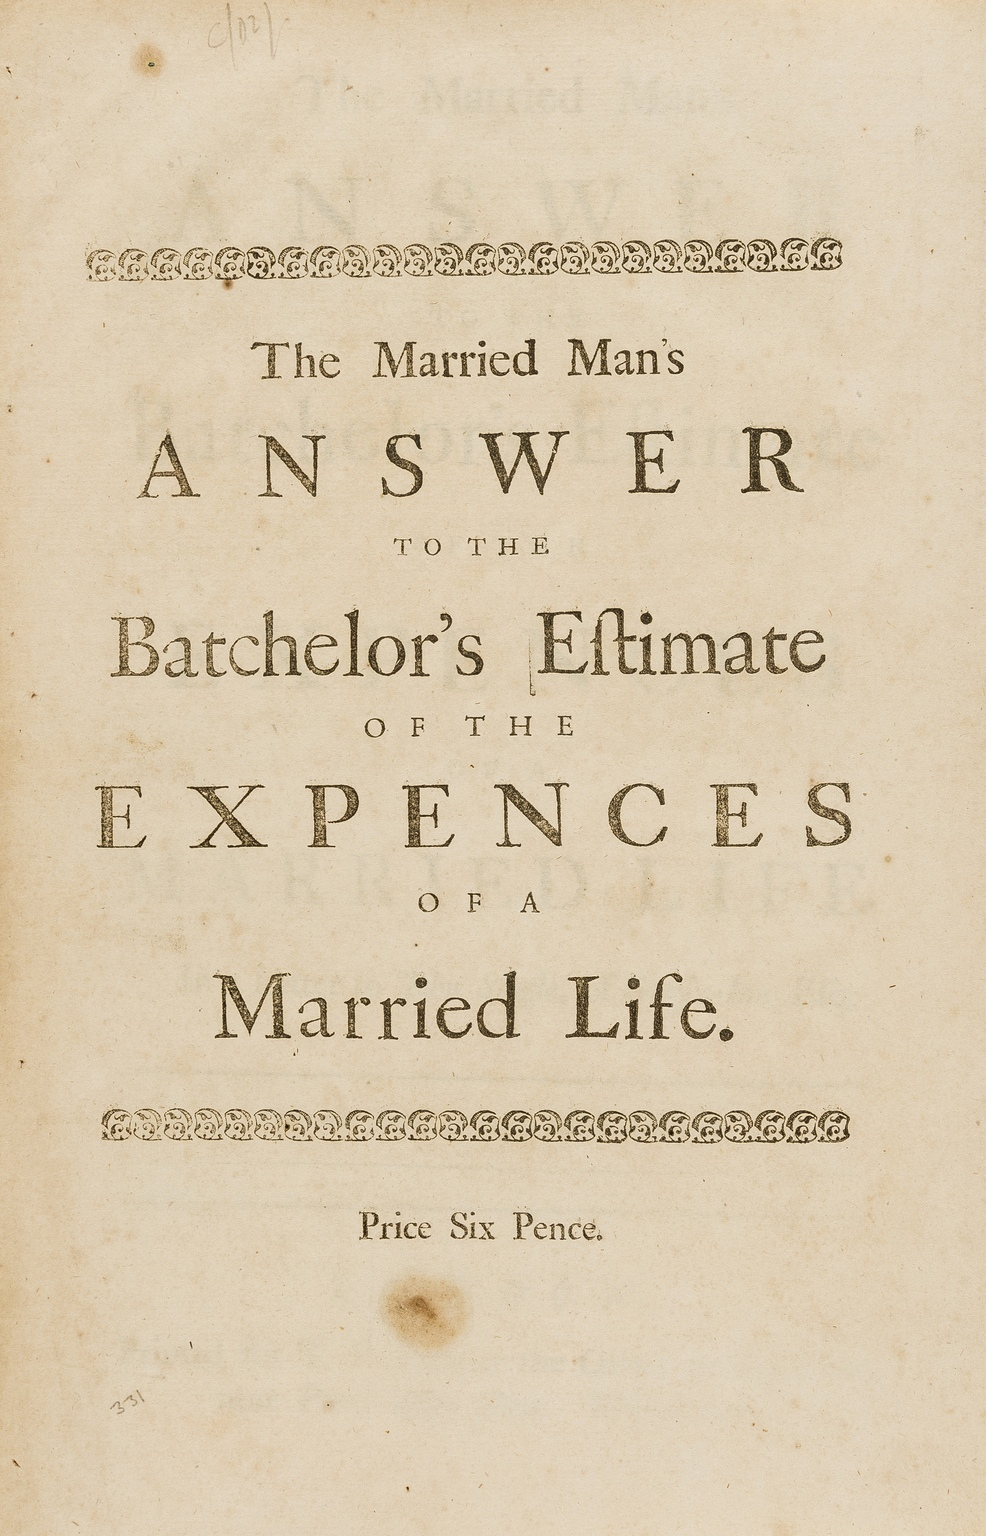 Lot 232 - Married Man's Answer (The) to the Batchelor's Estimate of the Expences of a Married Life, first …